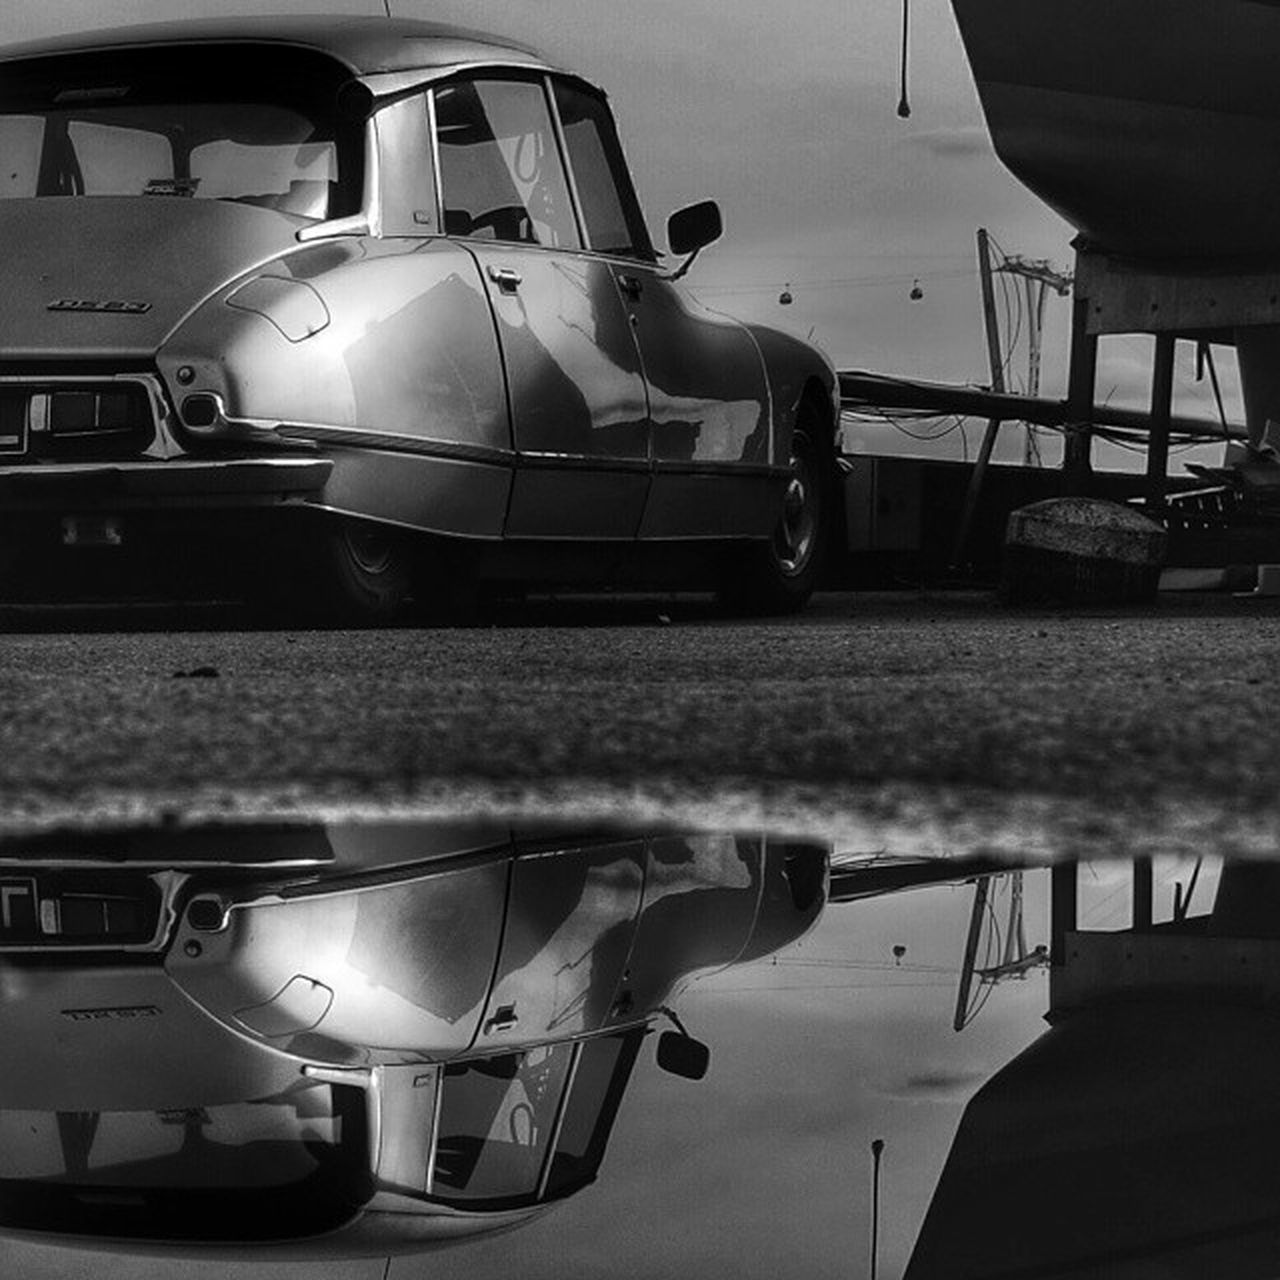 Vintage Citroen Ds23 Pallas at Trinitybuoywharf Design Classic Citroends Cars Dreamride Water Reflection